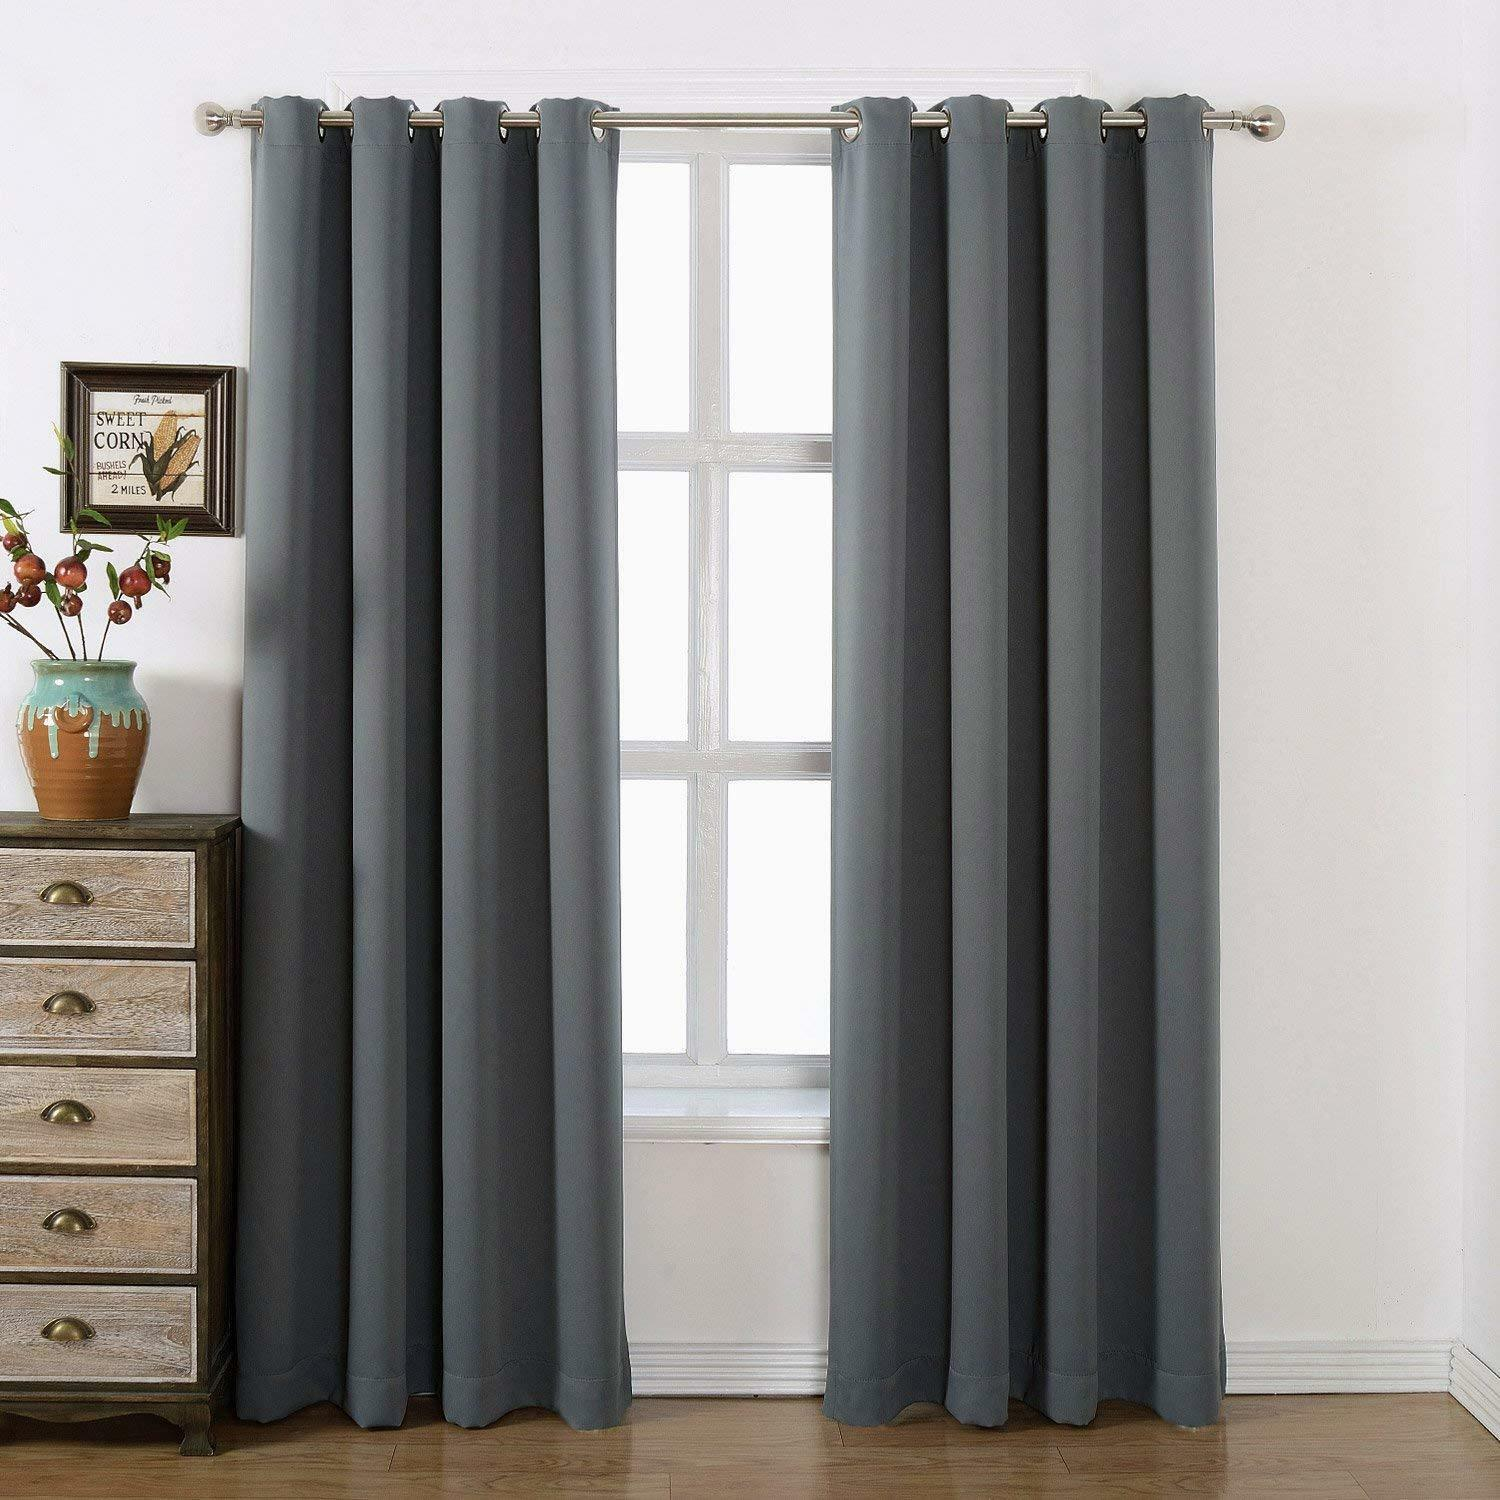 Luxury Thermal Blackout 40-70% Curtains Made Eyelet Ring Top